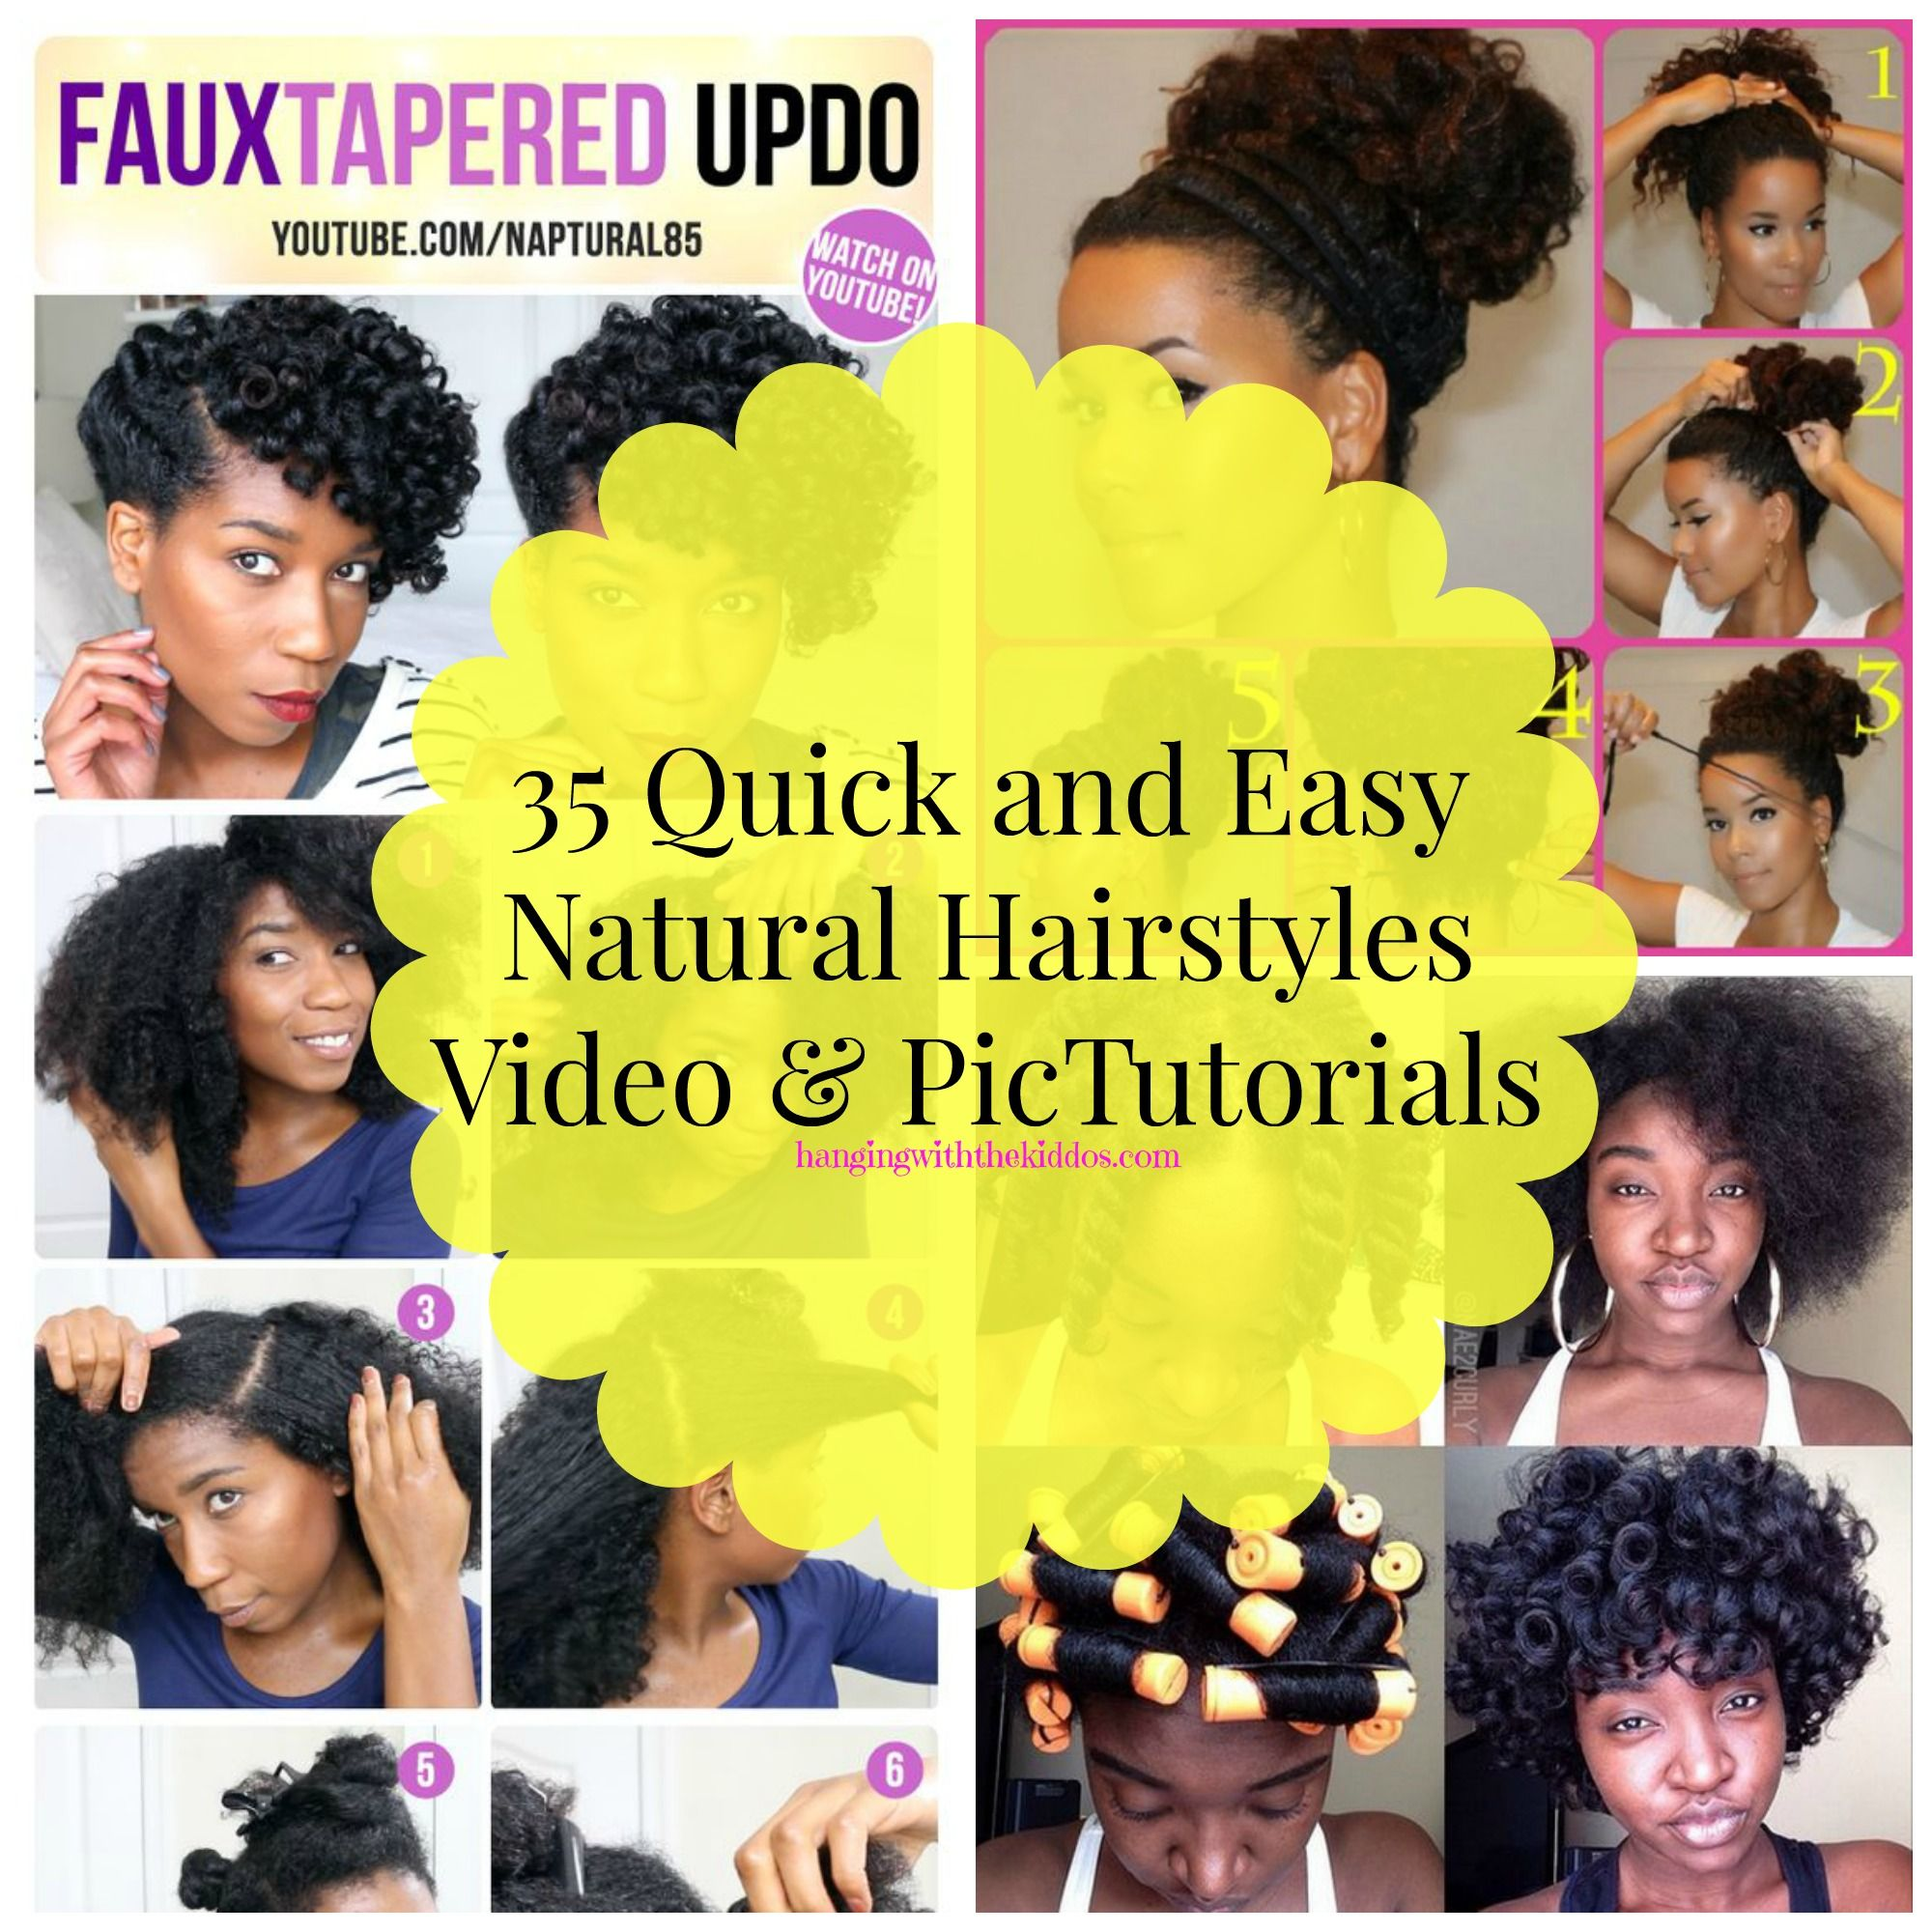 24+ Quick easy natural hairstyles inspirations